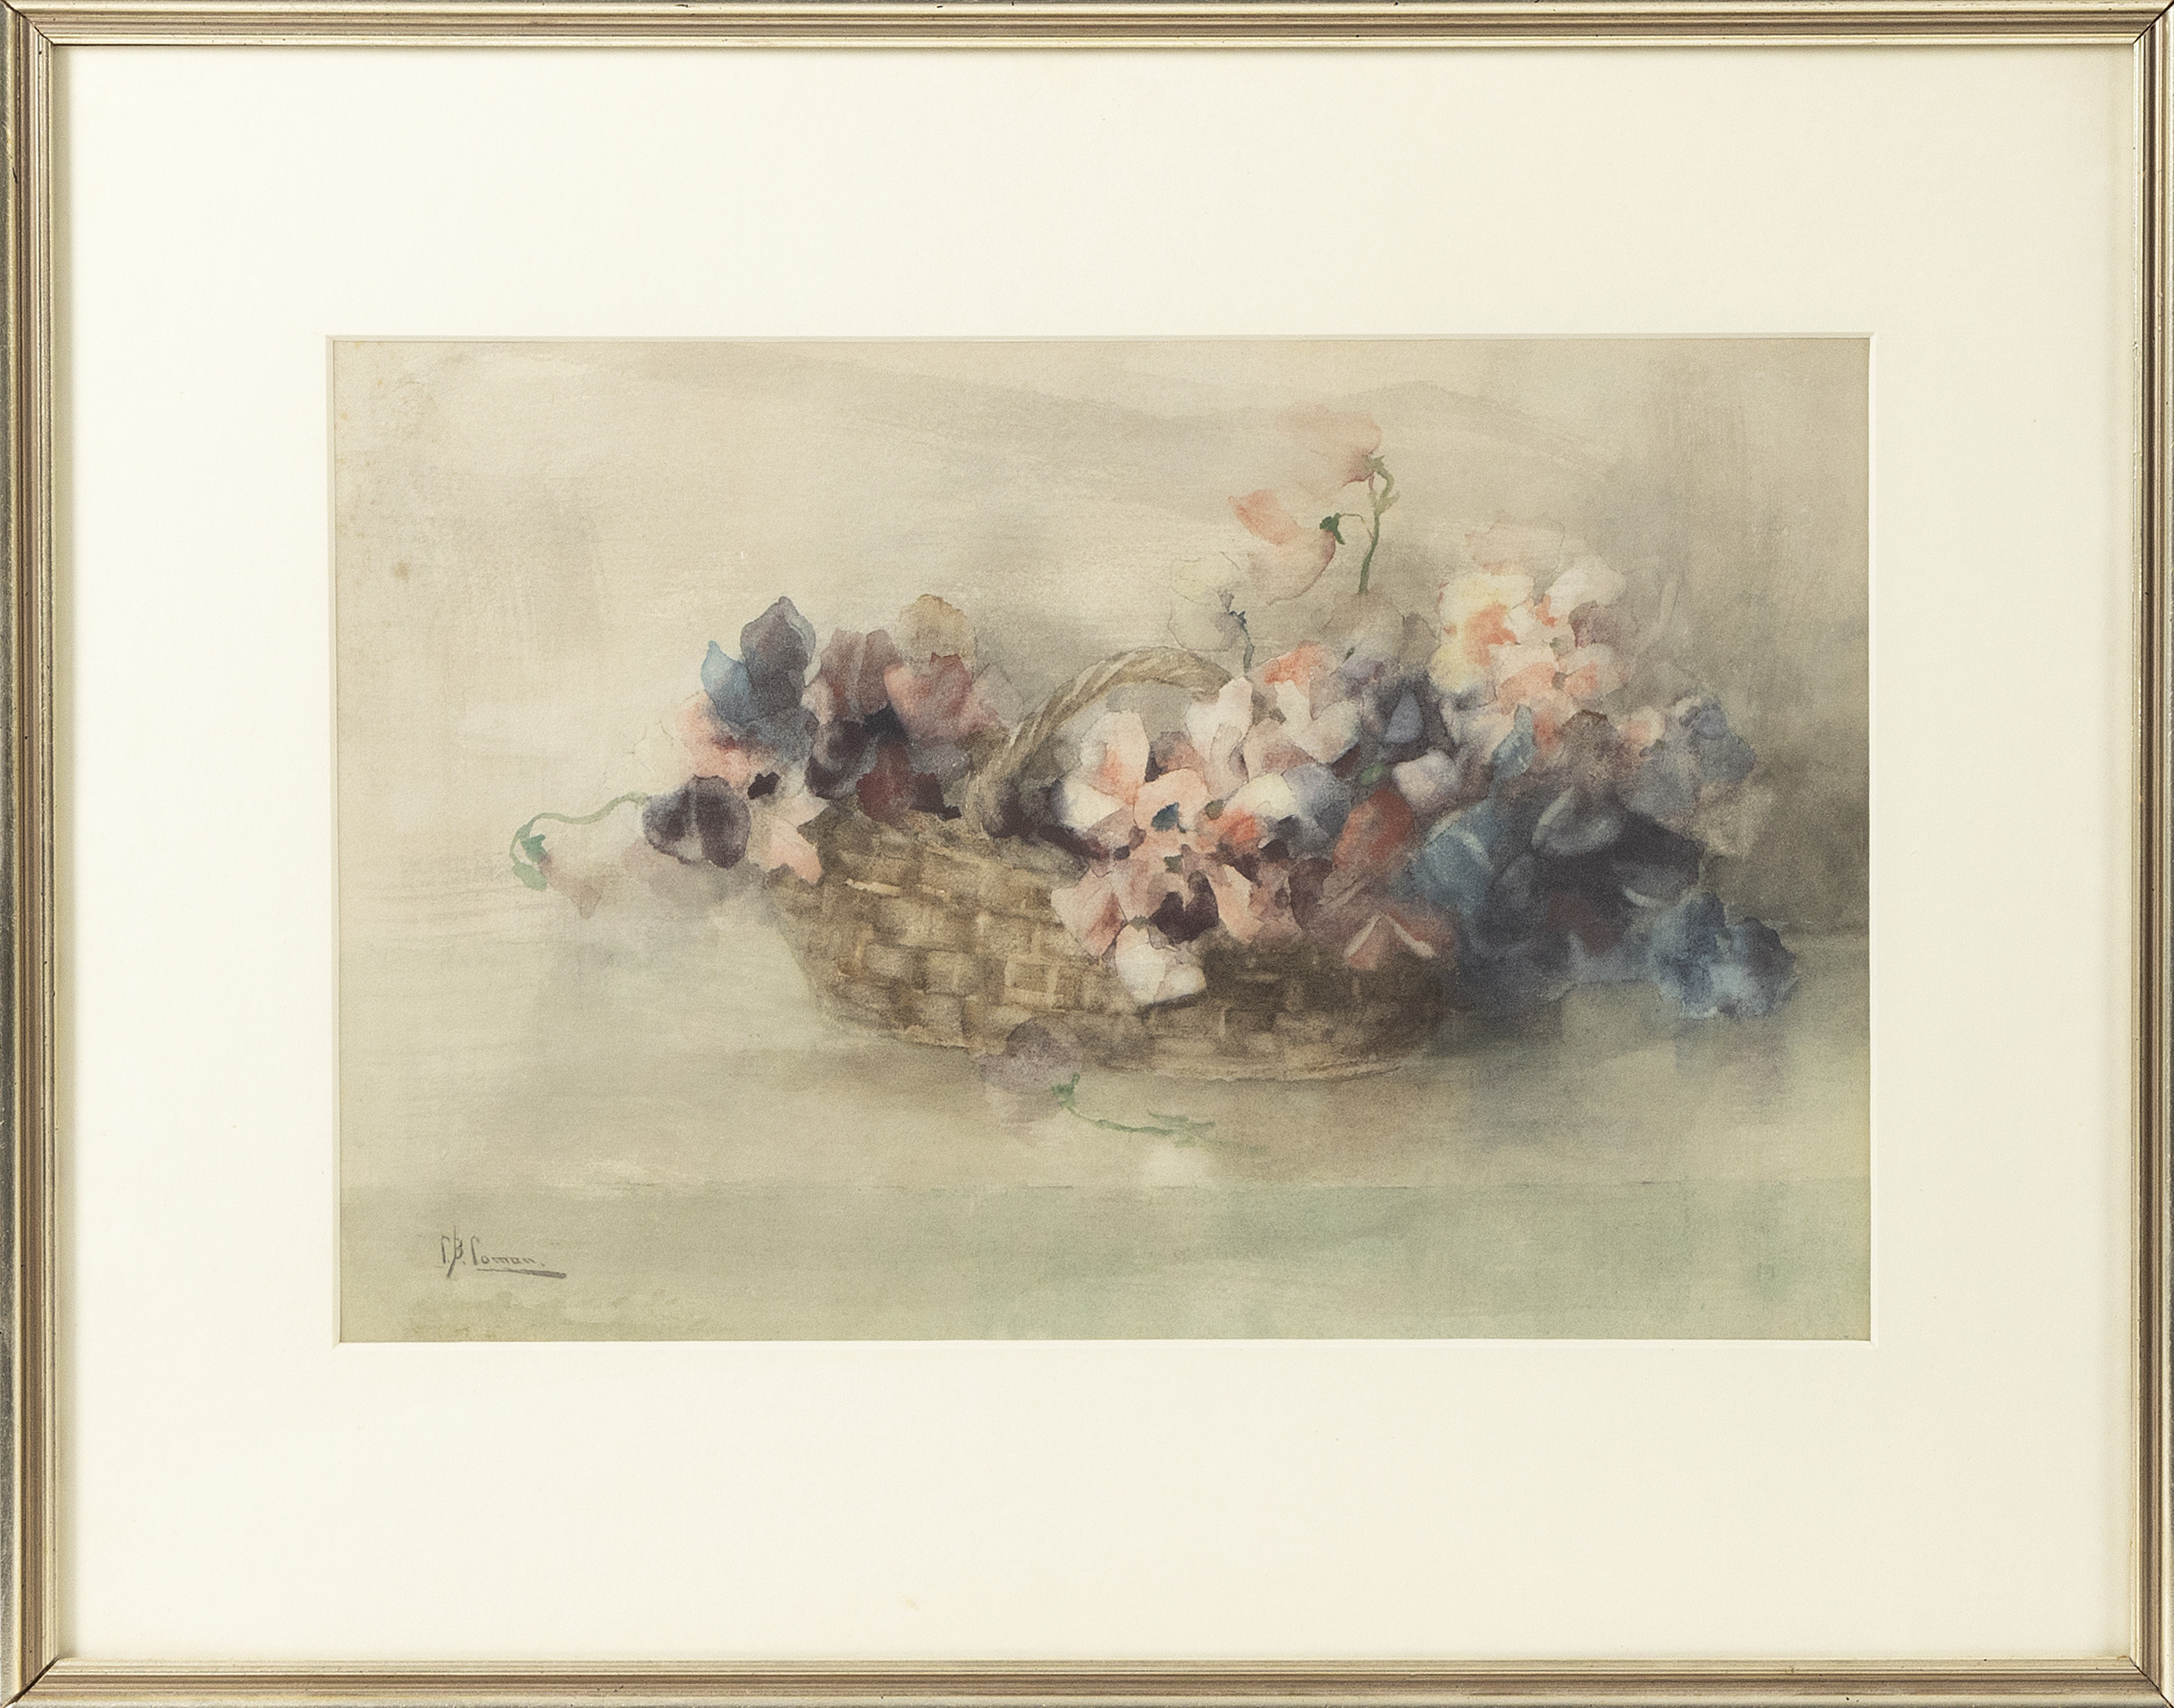 """CHARLOTTE BUELL COMAN (New York/Iowa, 1833-1924), Still life with flowers in a basket., Watercolor on paper, 10"""" x 16"""" sight. Framed 18"""" x 23""""."""